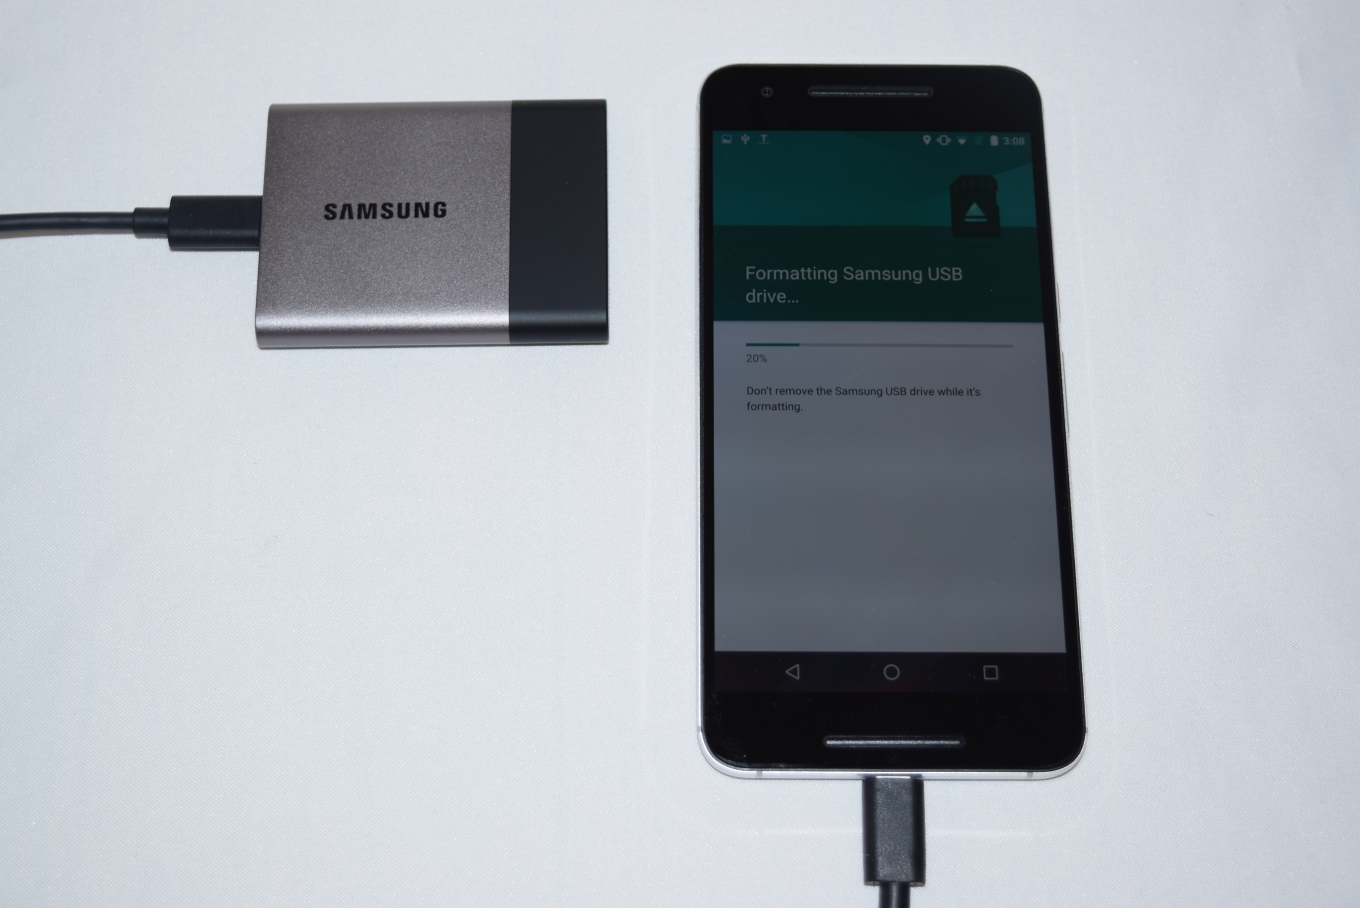 Samsung Portable SSD T3 Review